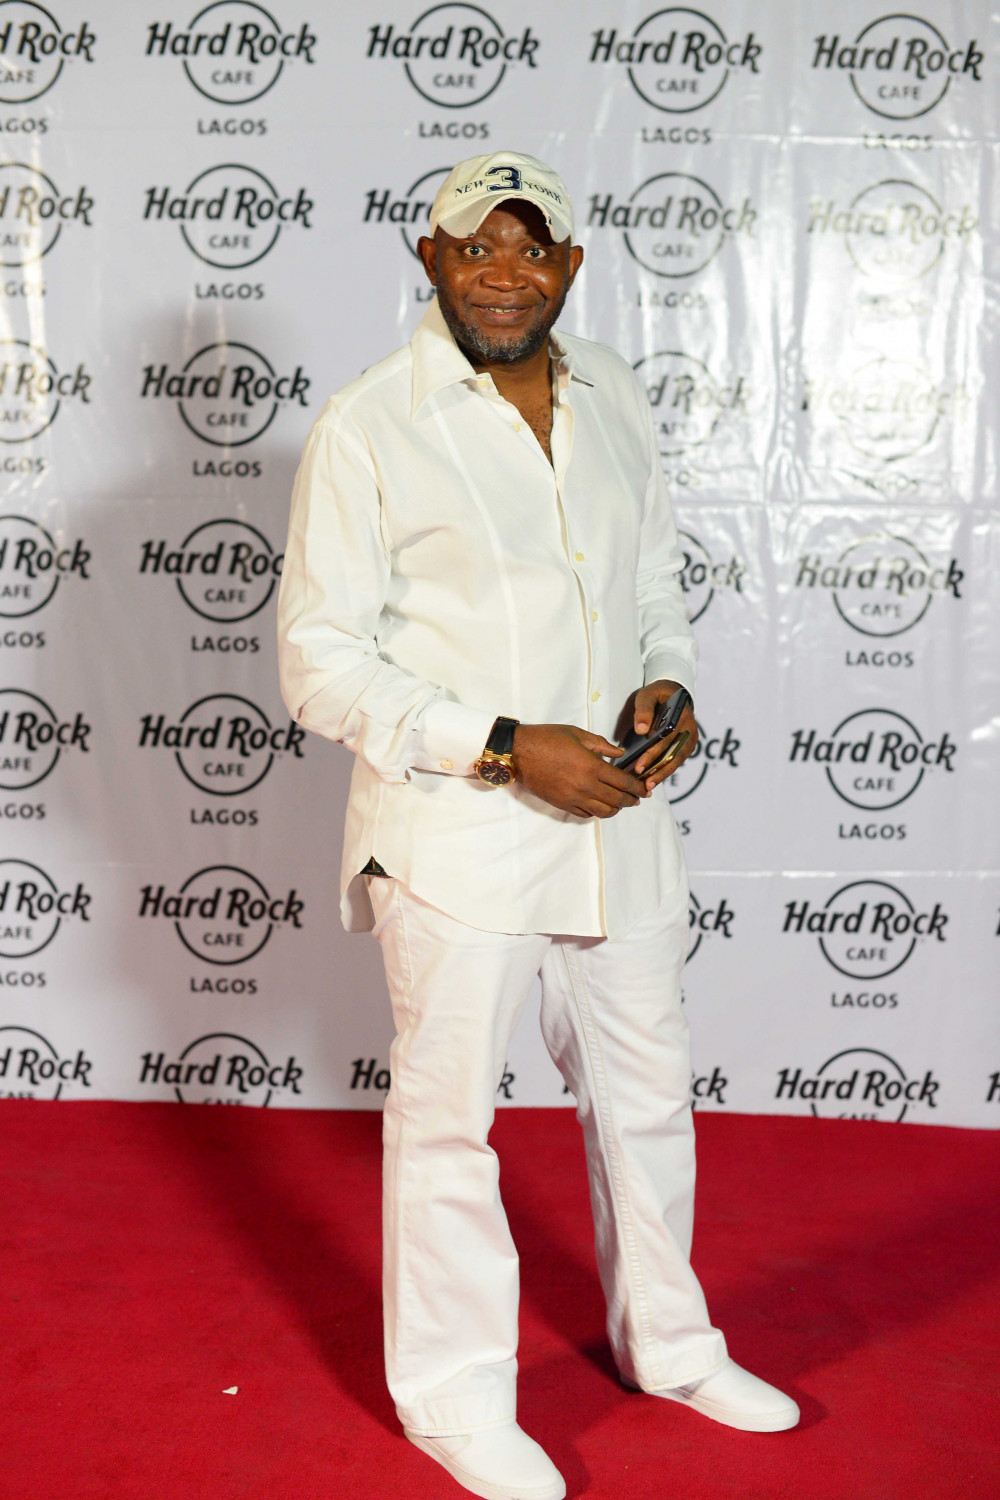 Hard Rock Cafe Lagos Launch BellaNaija Paul